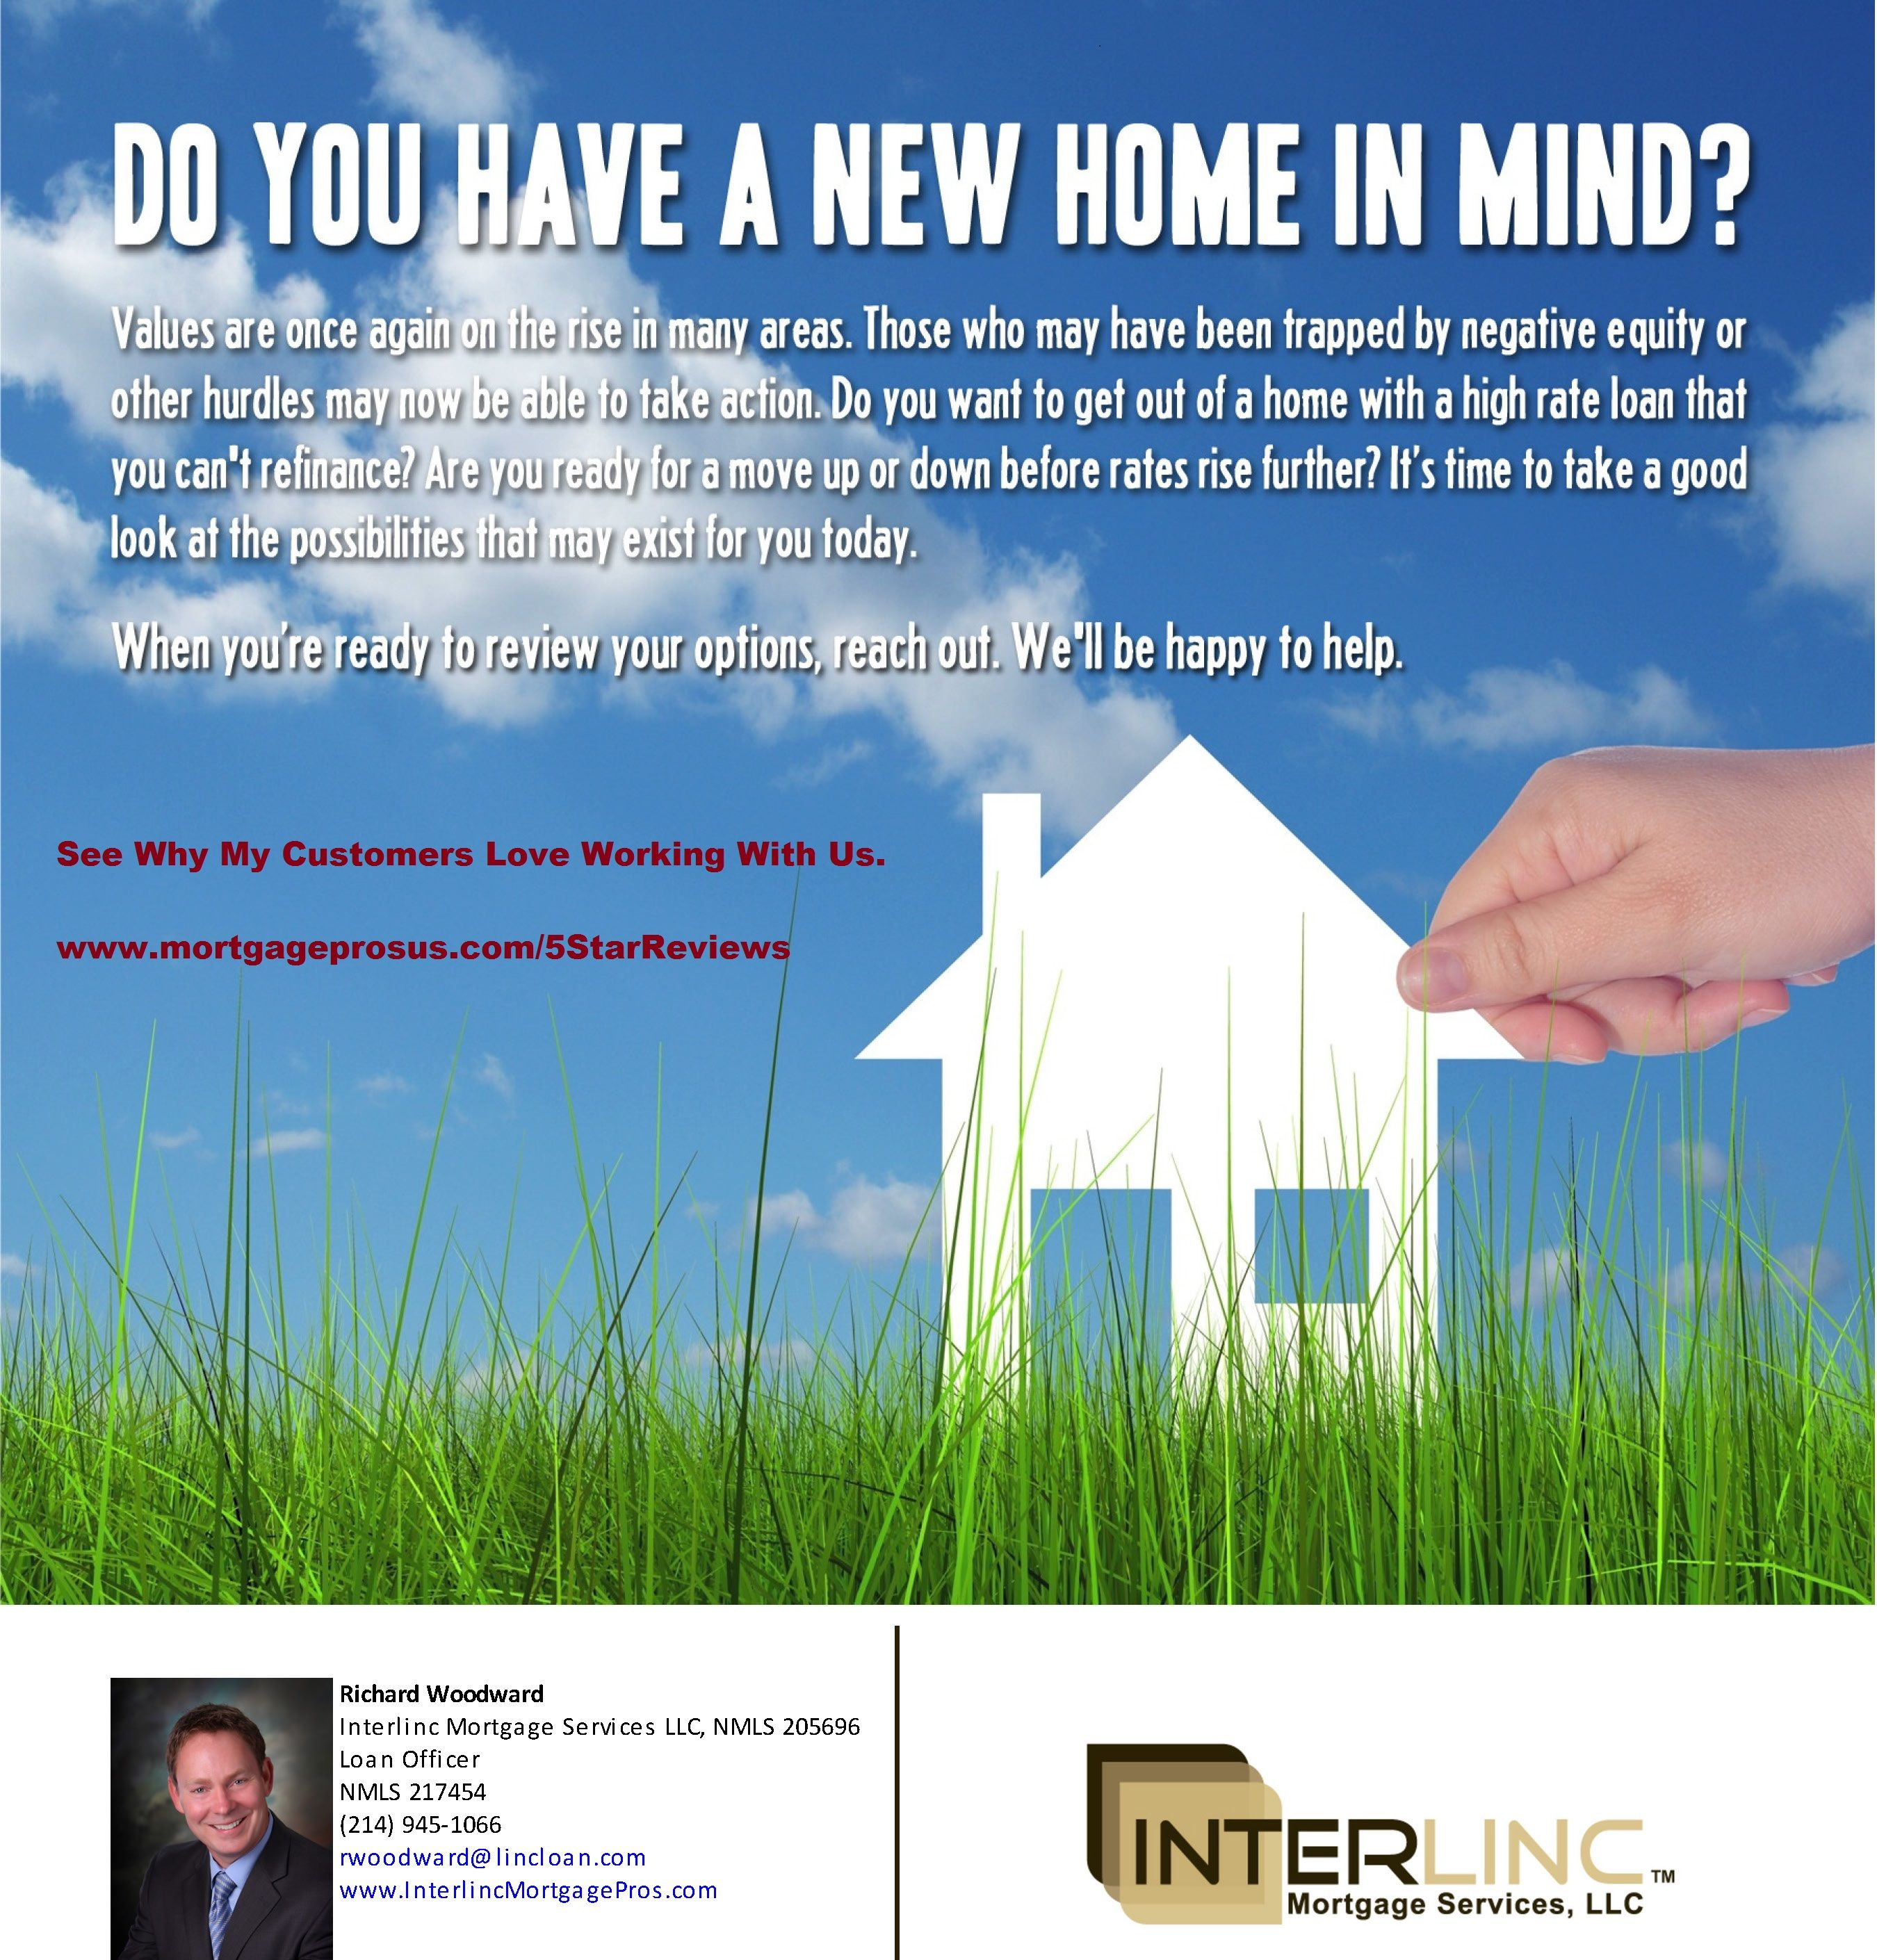 Do You Have A New Texas Home In Mind?